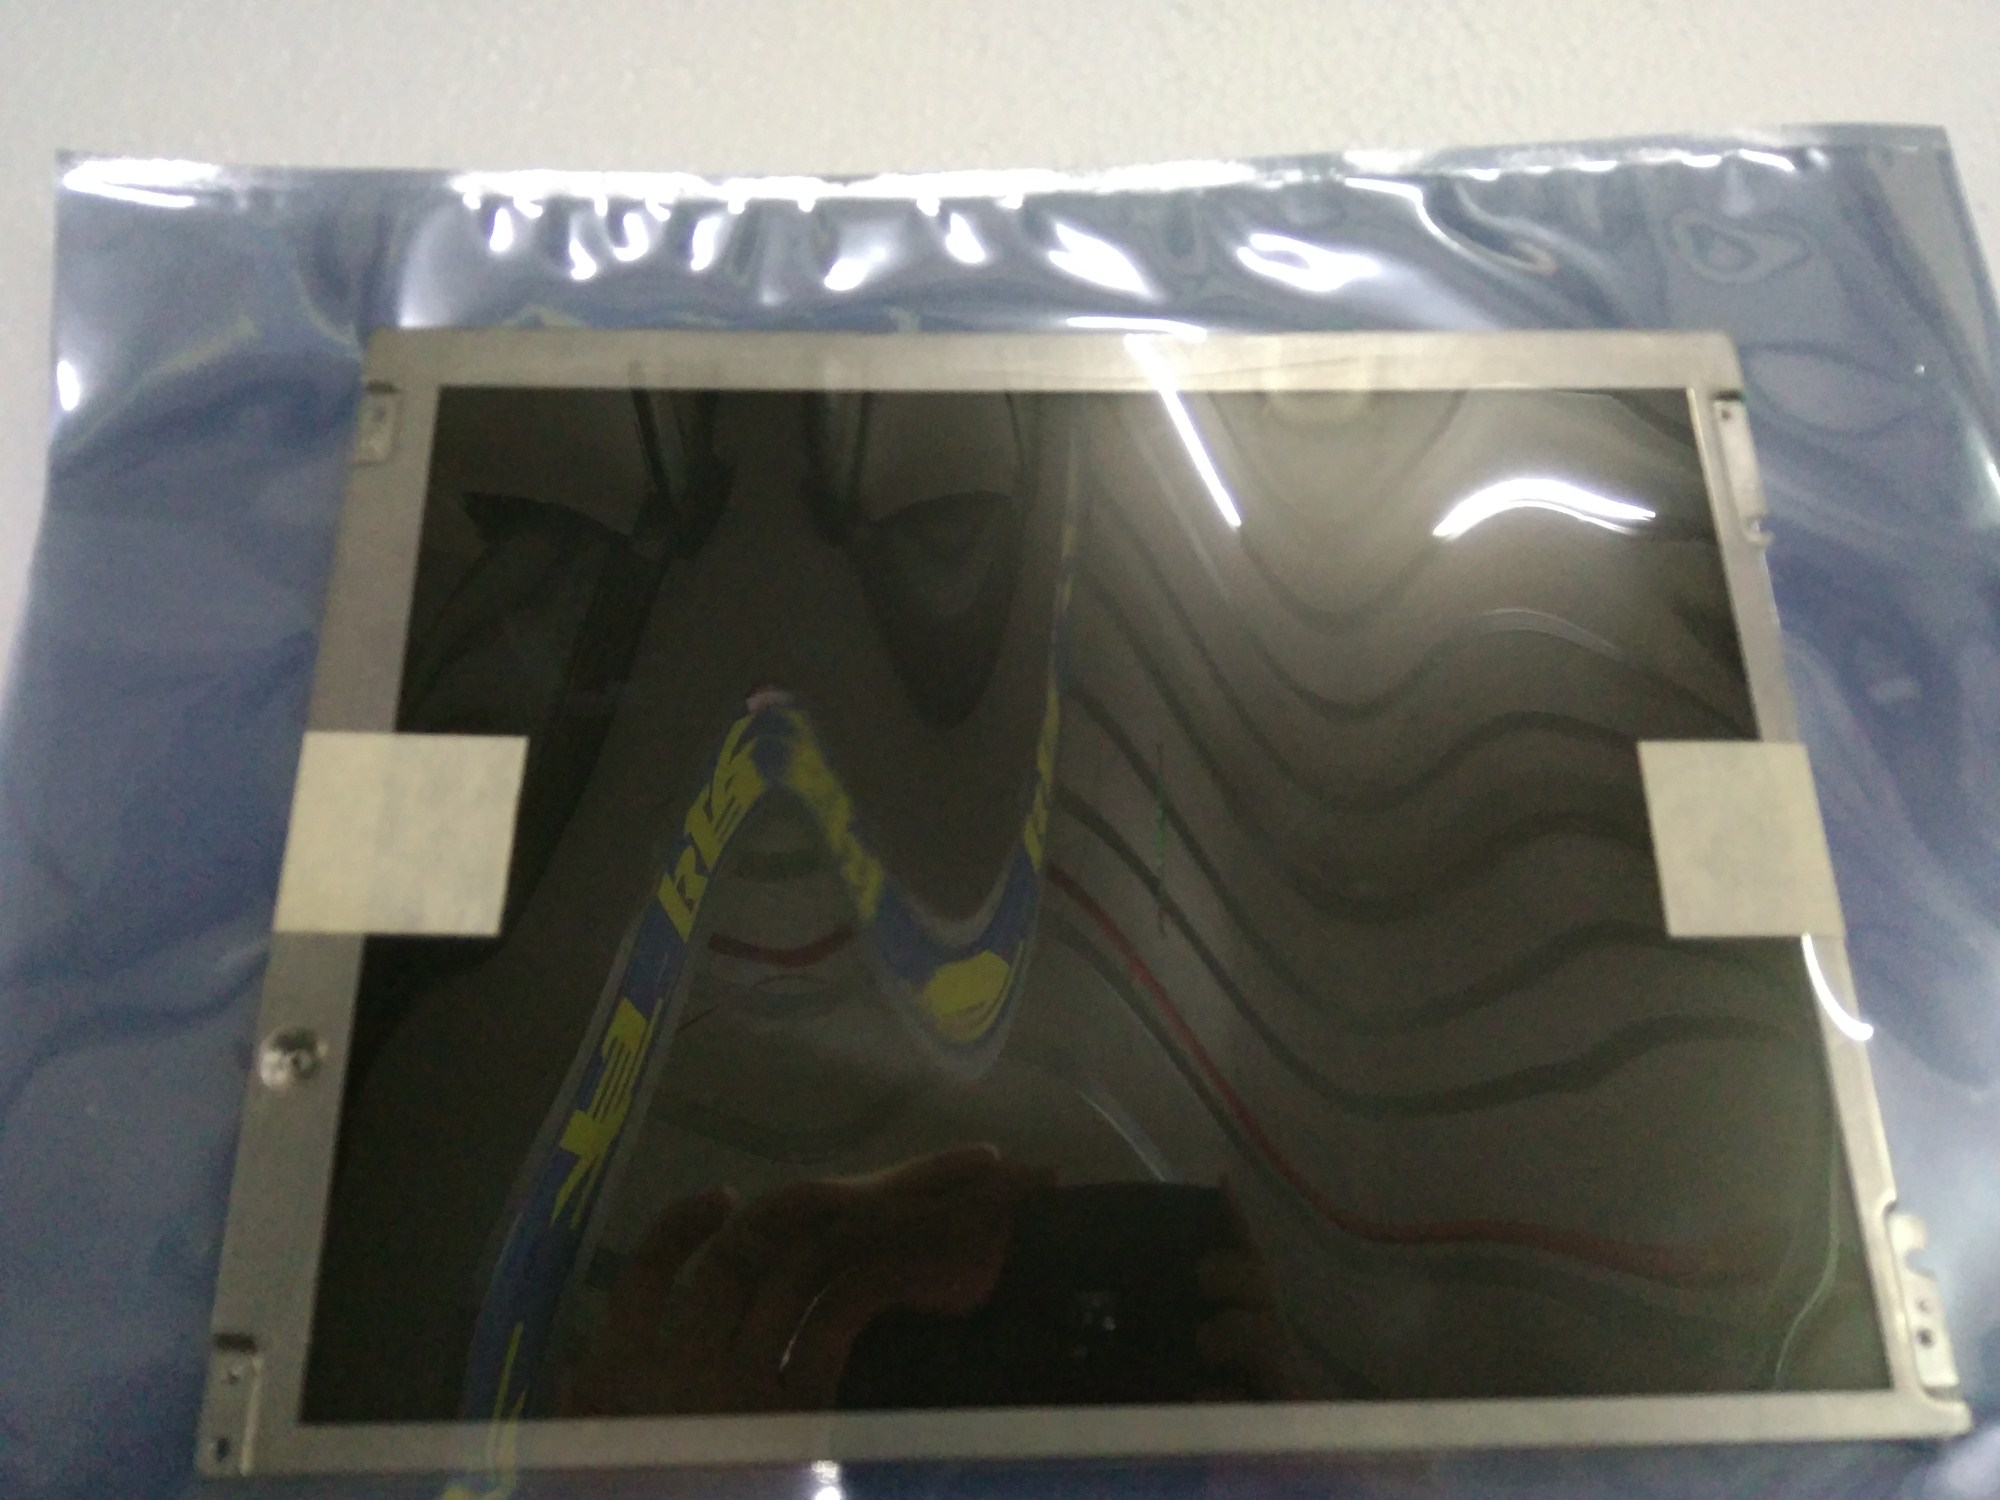 Industrial display LCD screen 12.1 inch Supply original G121SN01 V.2 original auo12 1 inch lcd screen g121sn01 v 3 g121sn01 v 1 industrial lcd